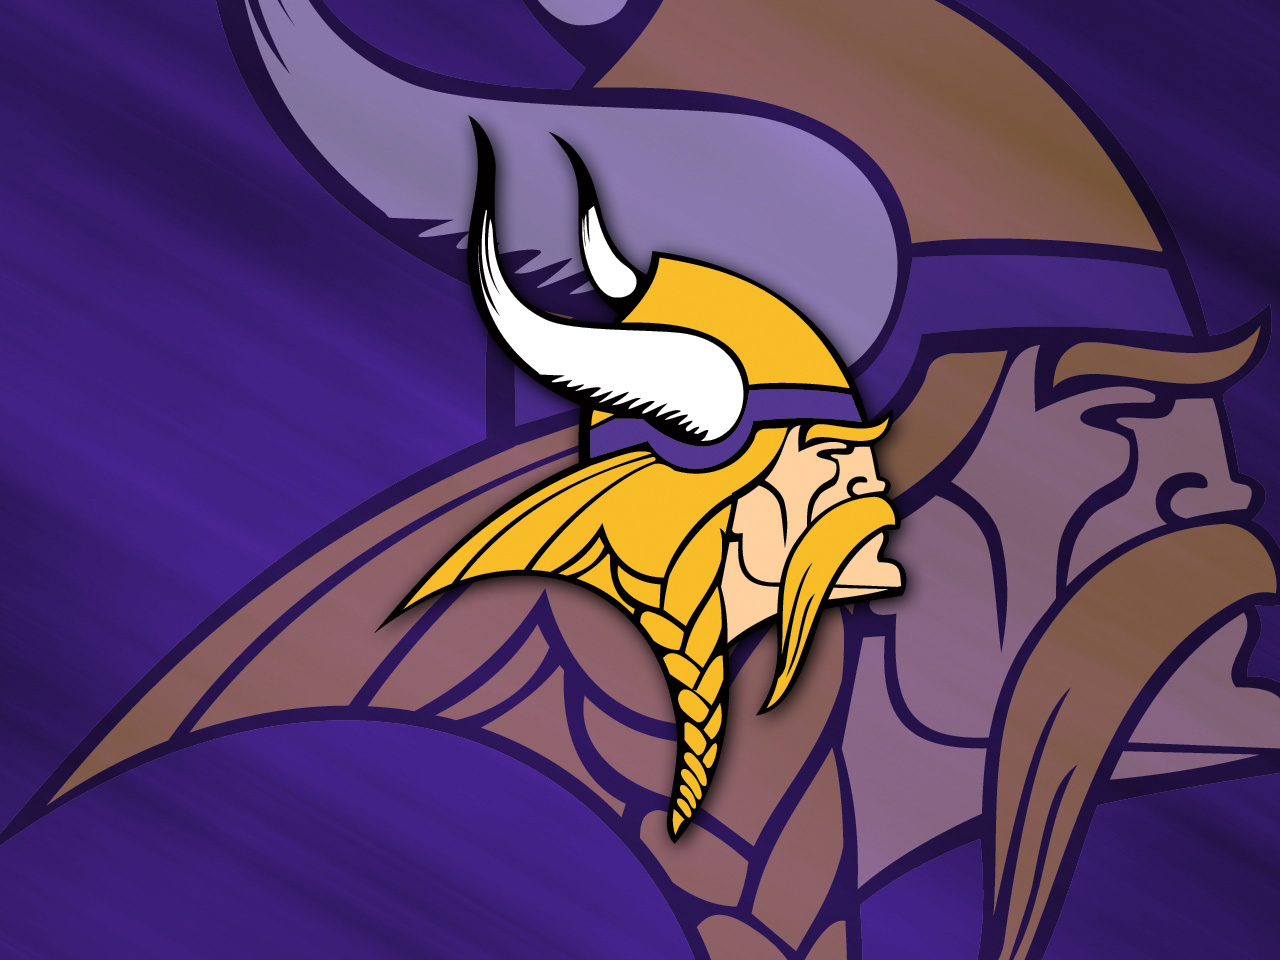 Minnesota Vikings Steel 1280960 Digital Citizen